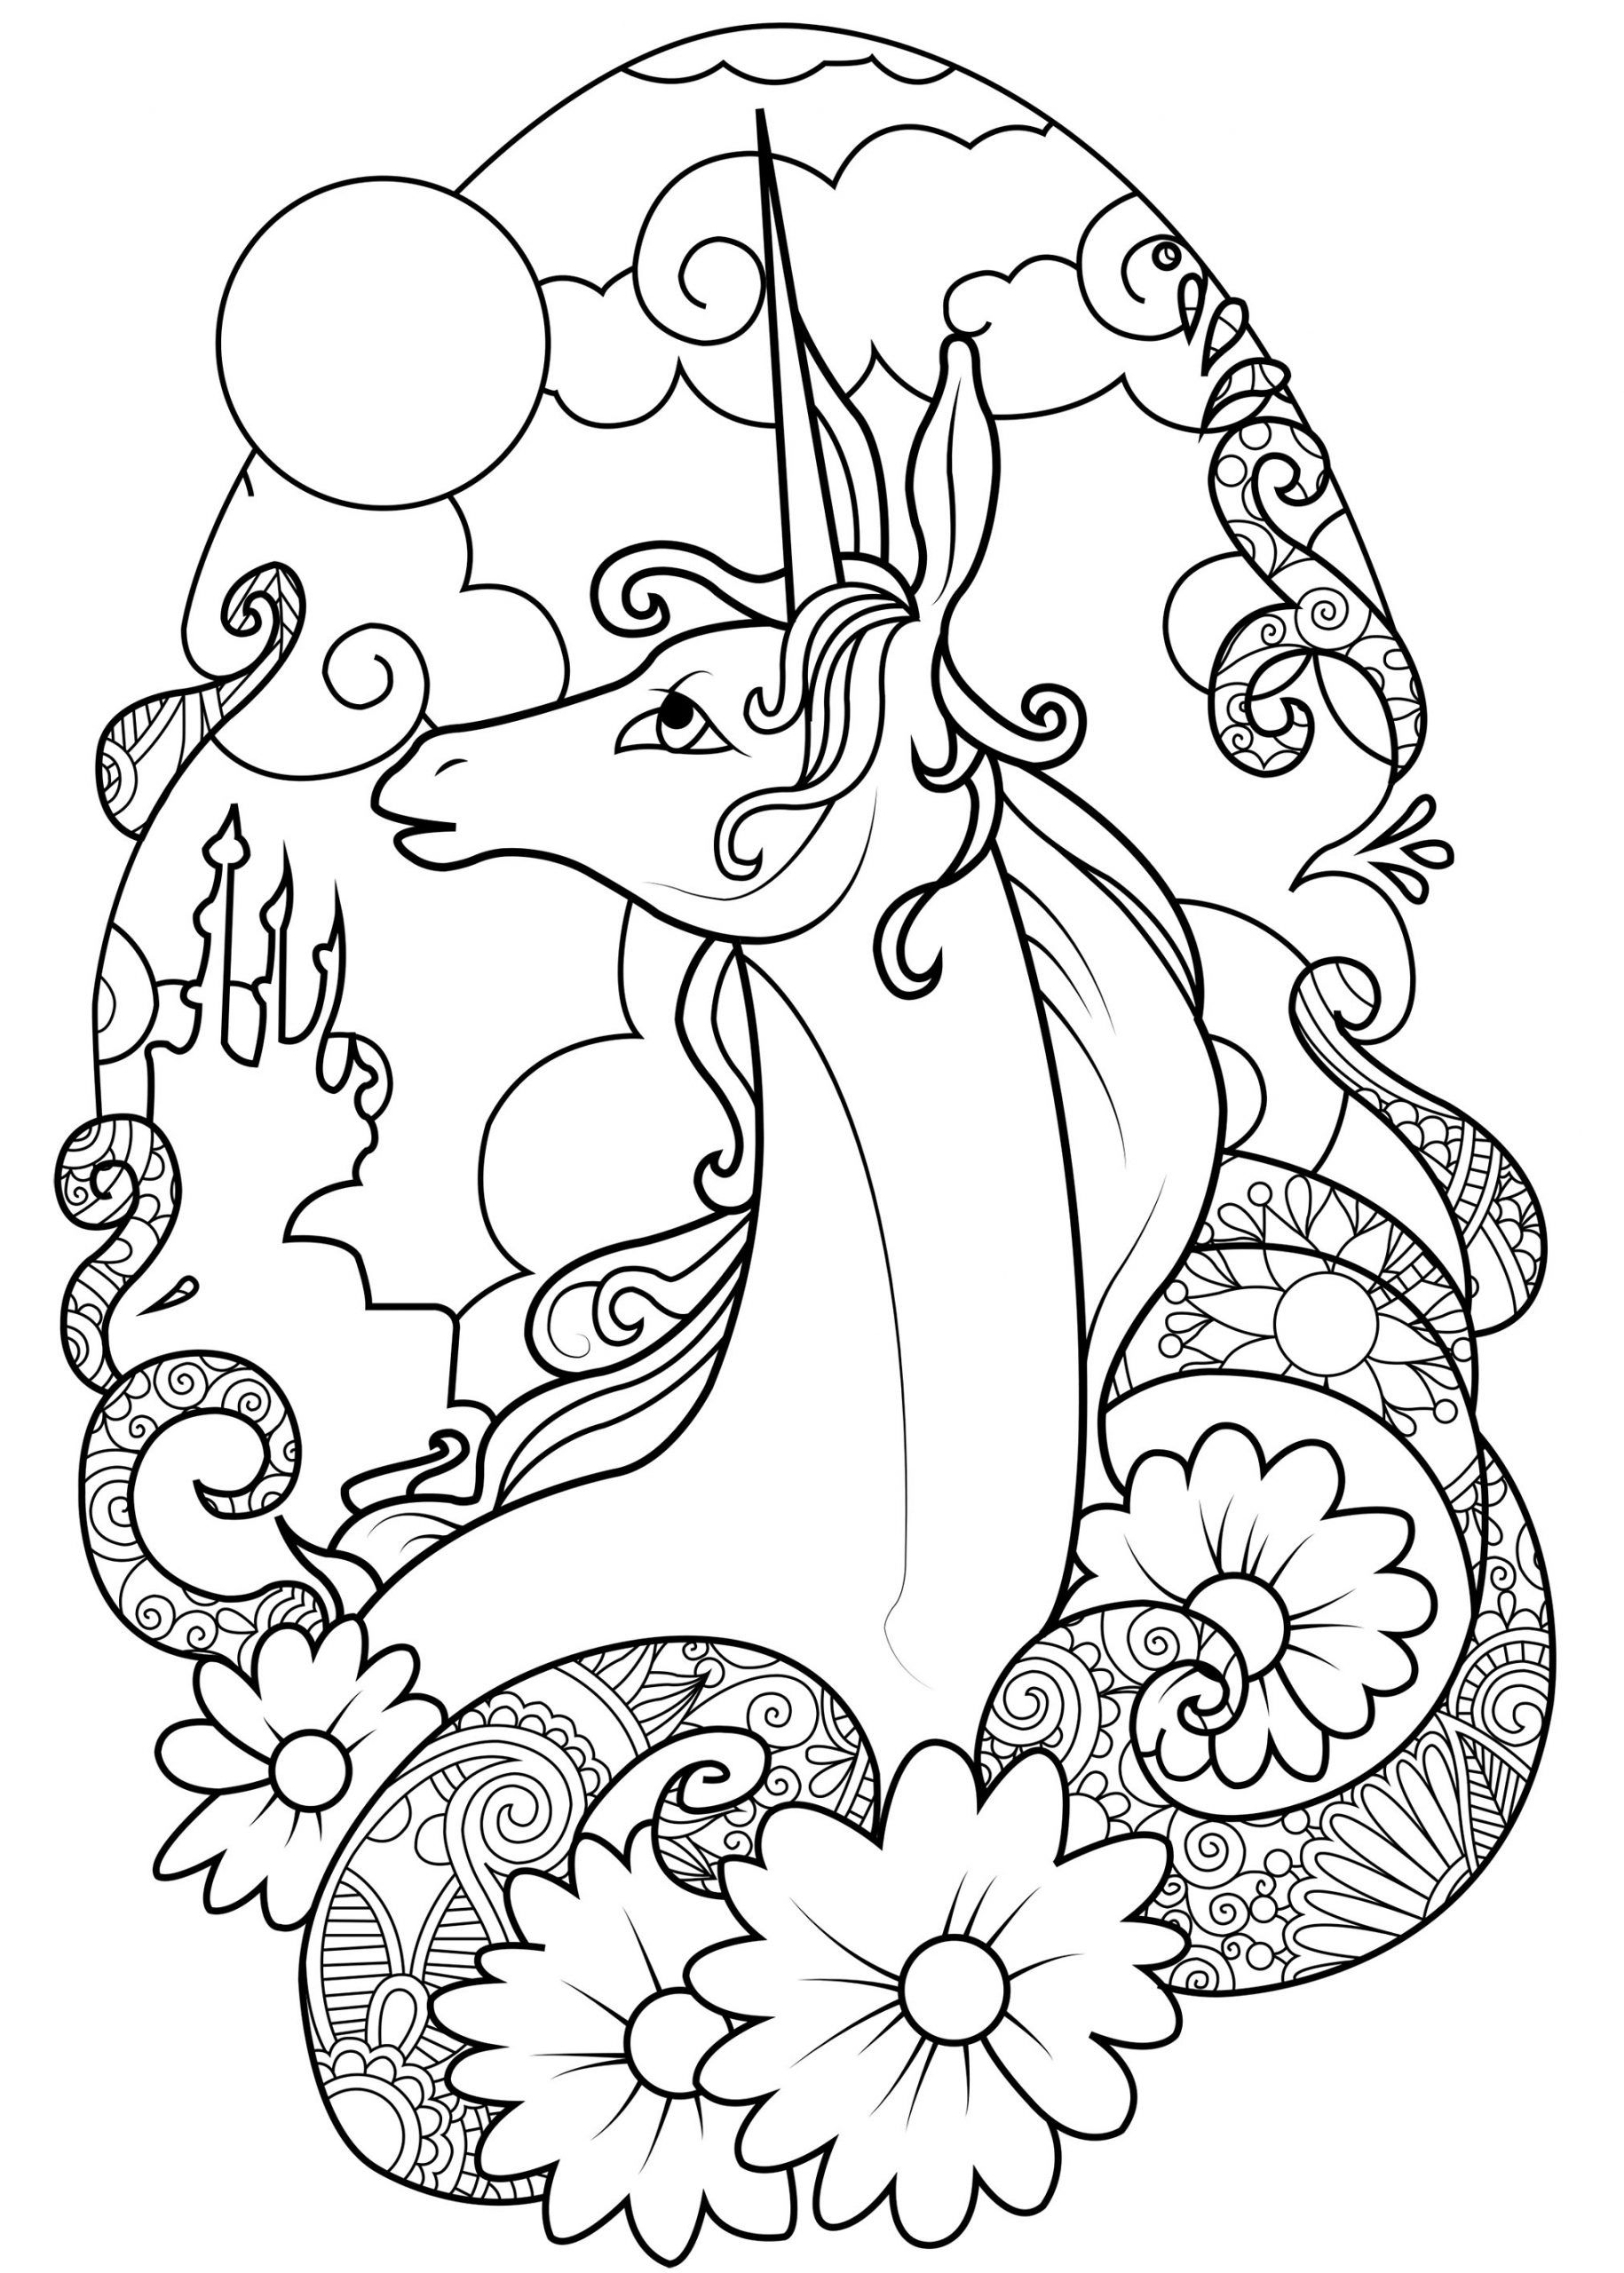 Water Coloring Pages Printable Cycle For Preschoolers Sheet Pdf Simple Page Safety Adults H2o Jus Unicorn Coloring Pages Dragon Coloring Page Cat Coloring Book